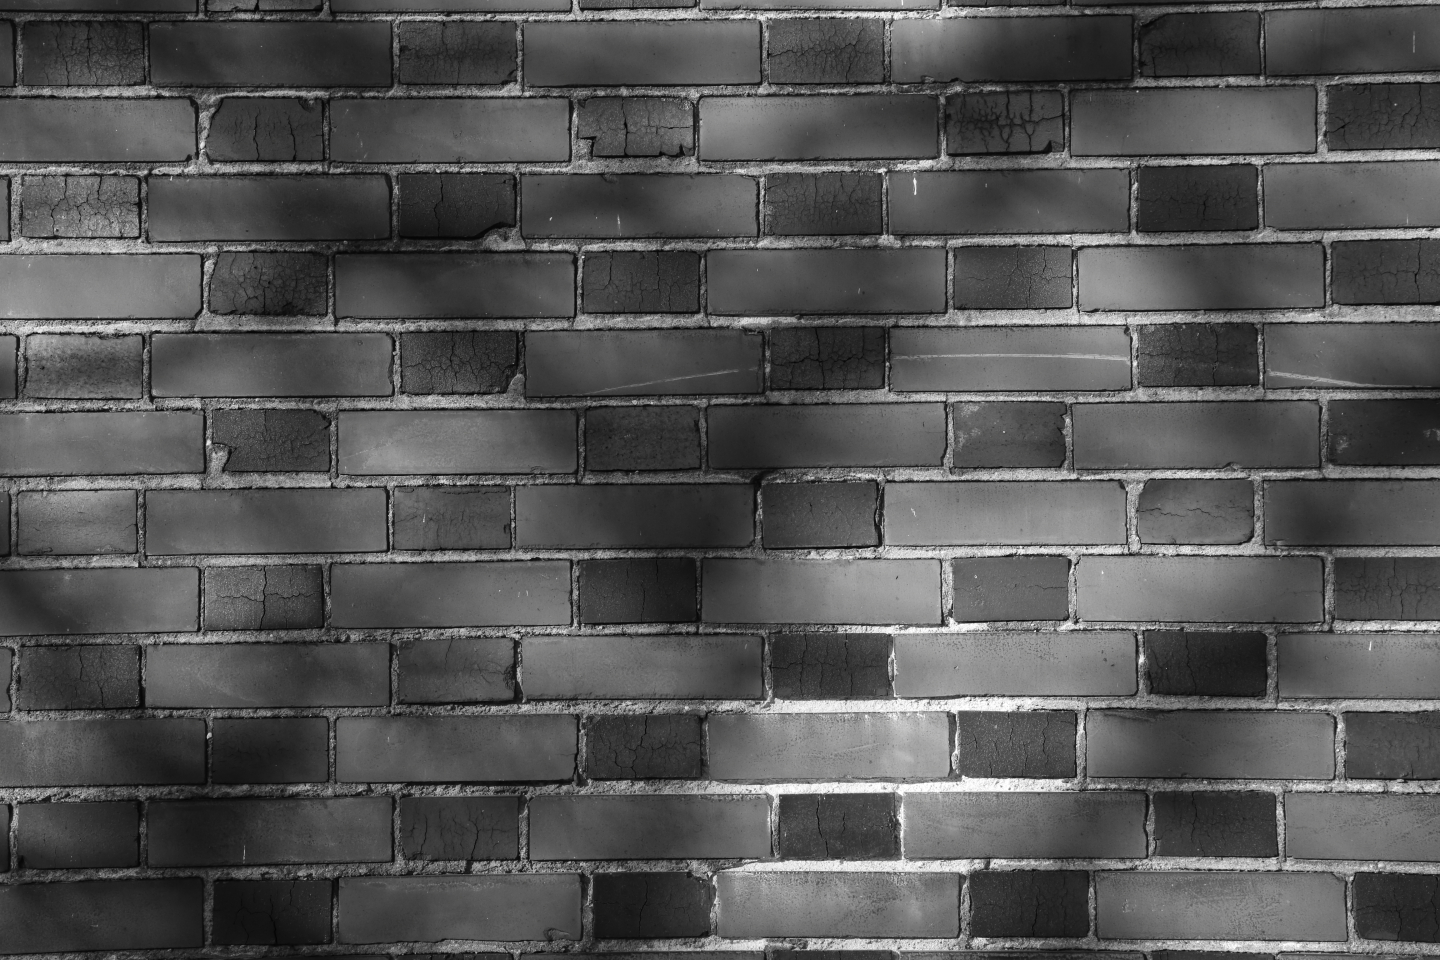 Black And White Bricks Abstract Richard Mcgrew 39s Black And White Photography